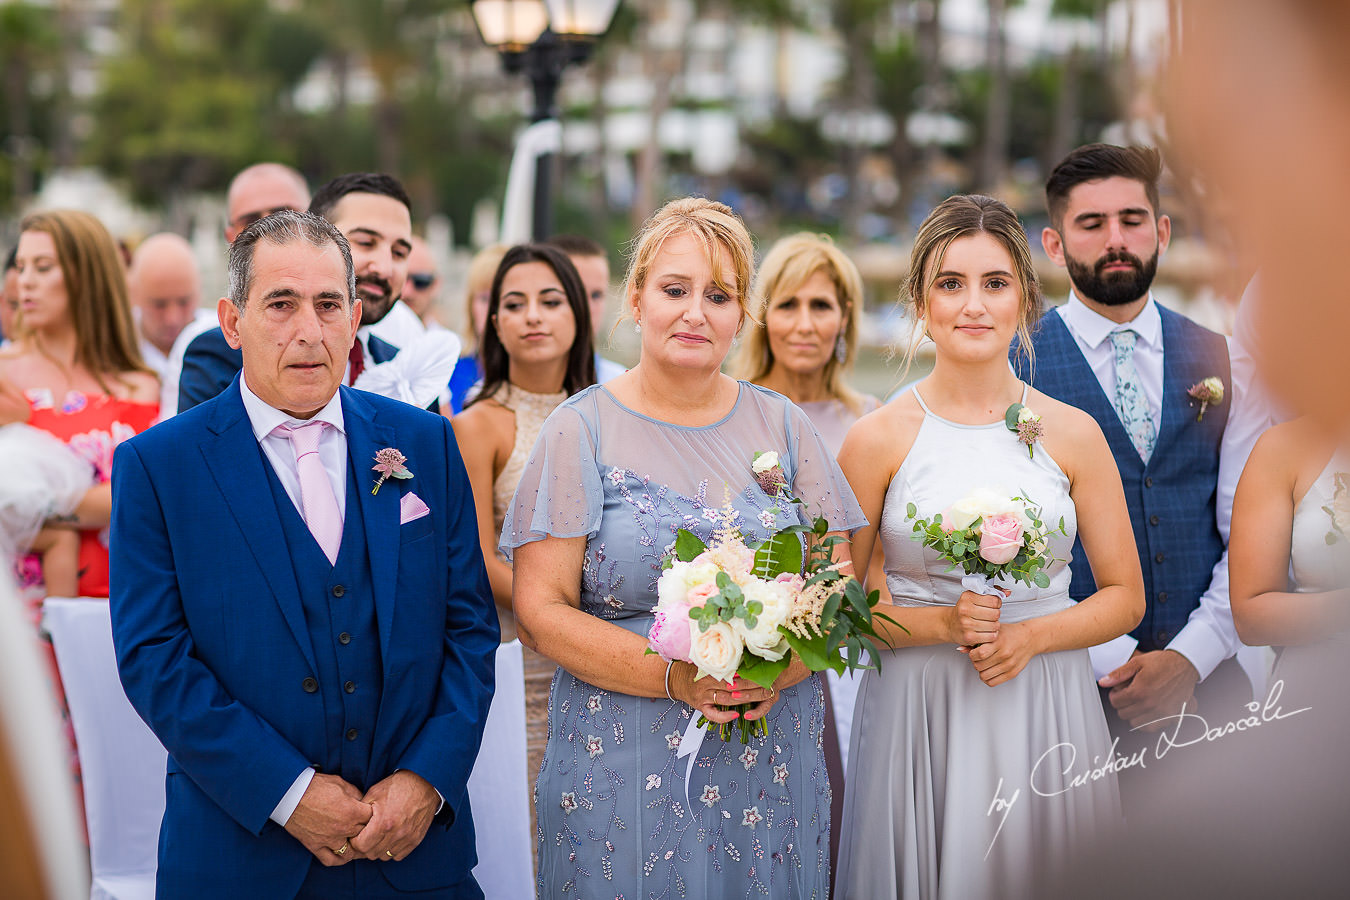 Wedding moments during a Beautiful Wedding at Elias Beach Hotel captured by Cyprus Photographer Cristian Dascalu.